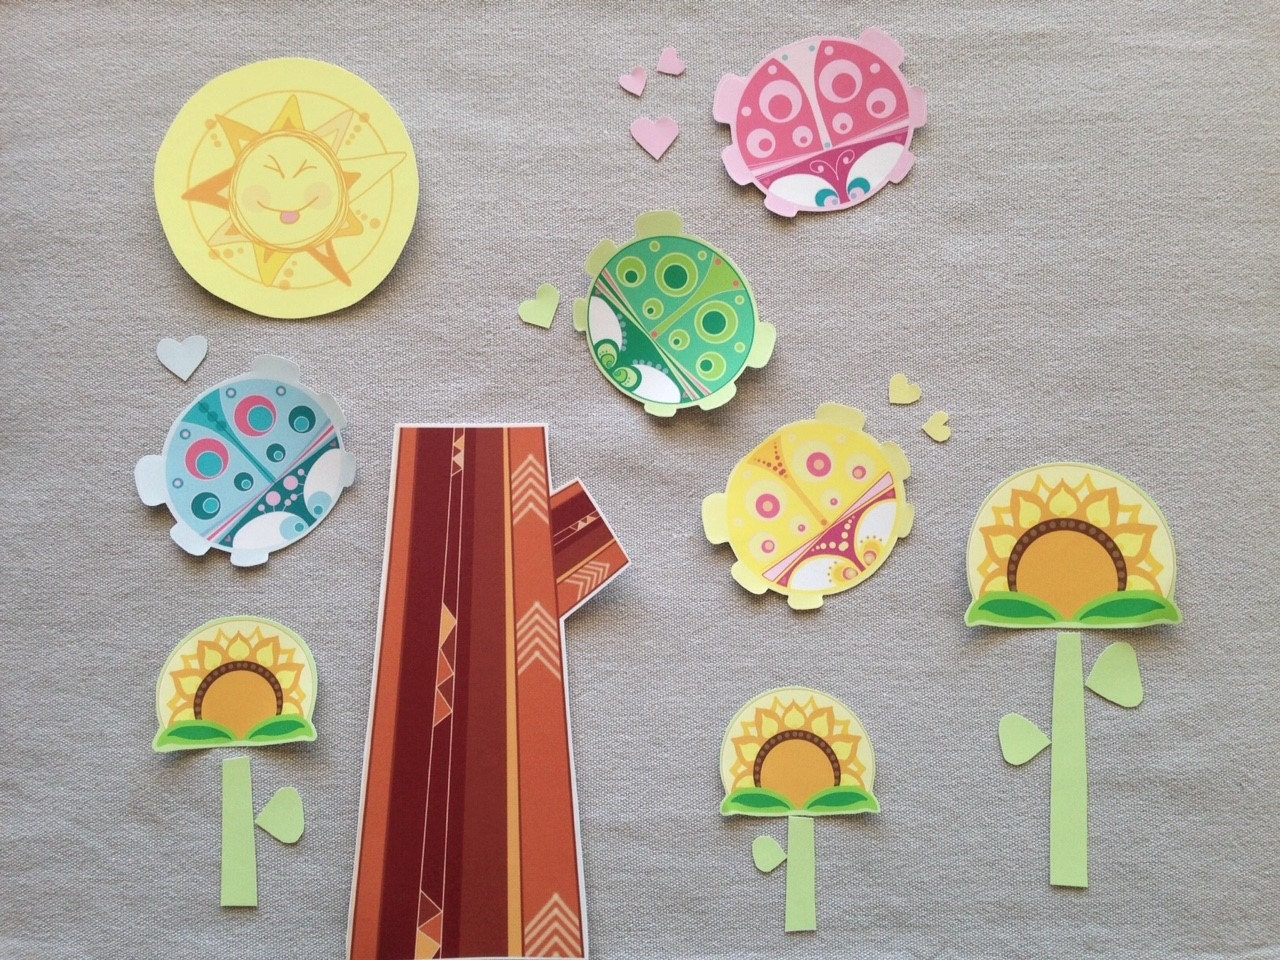 Craft Kit For Kids Make Your Own Yellow Ladybug Sewing And - Make your own decal kit